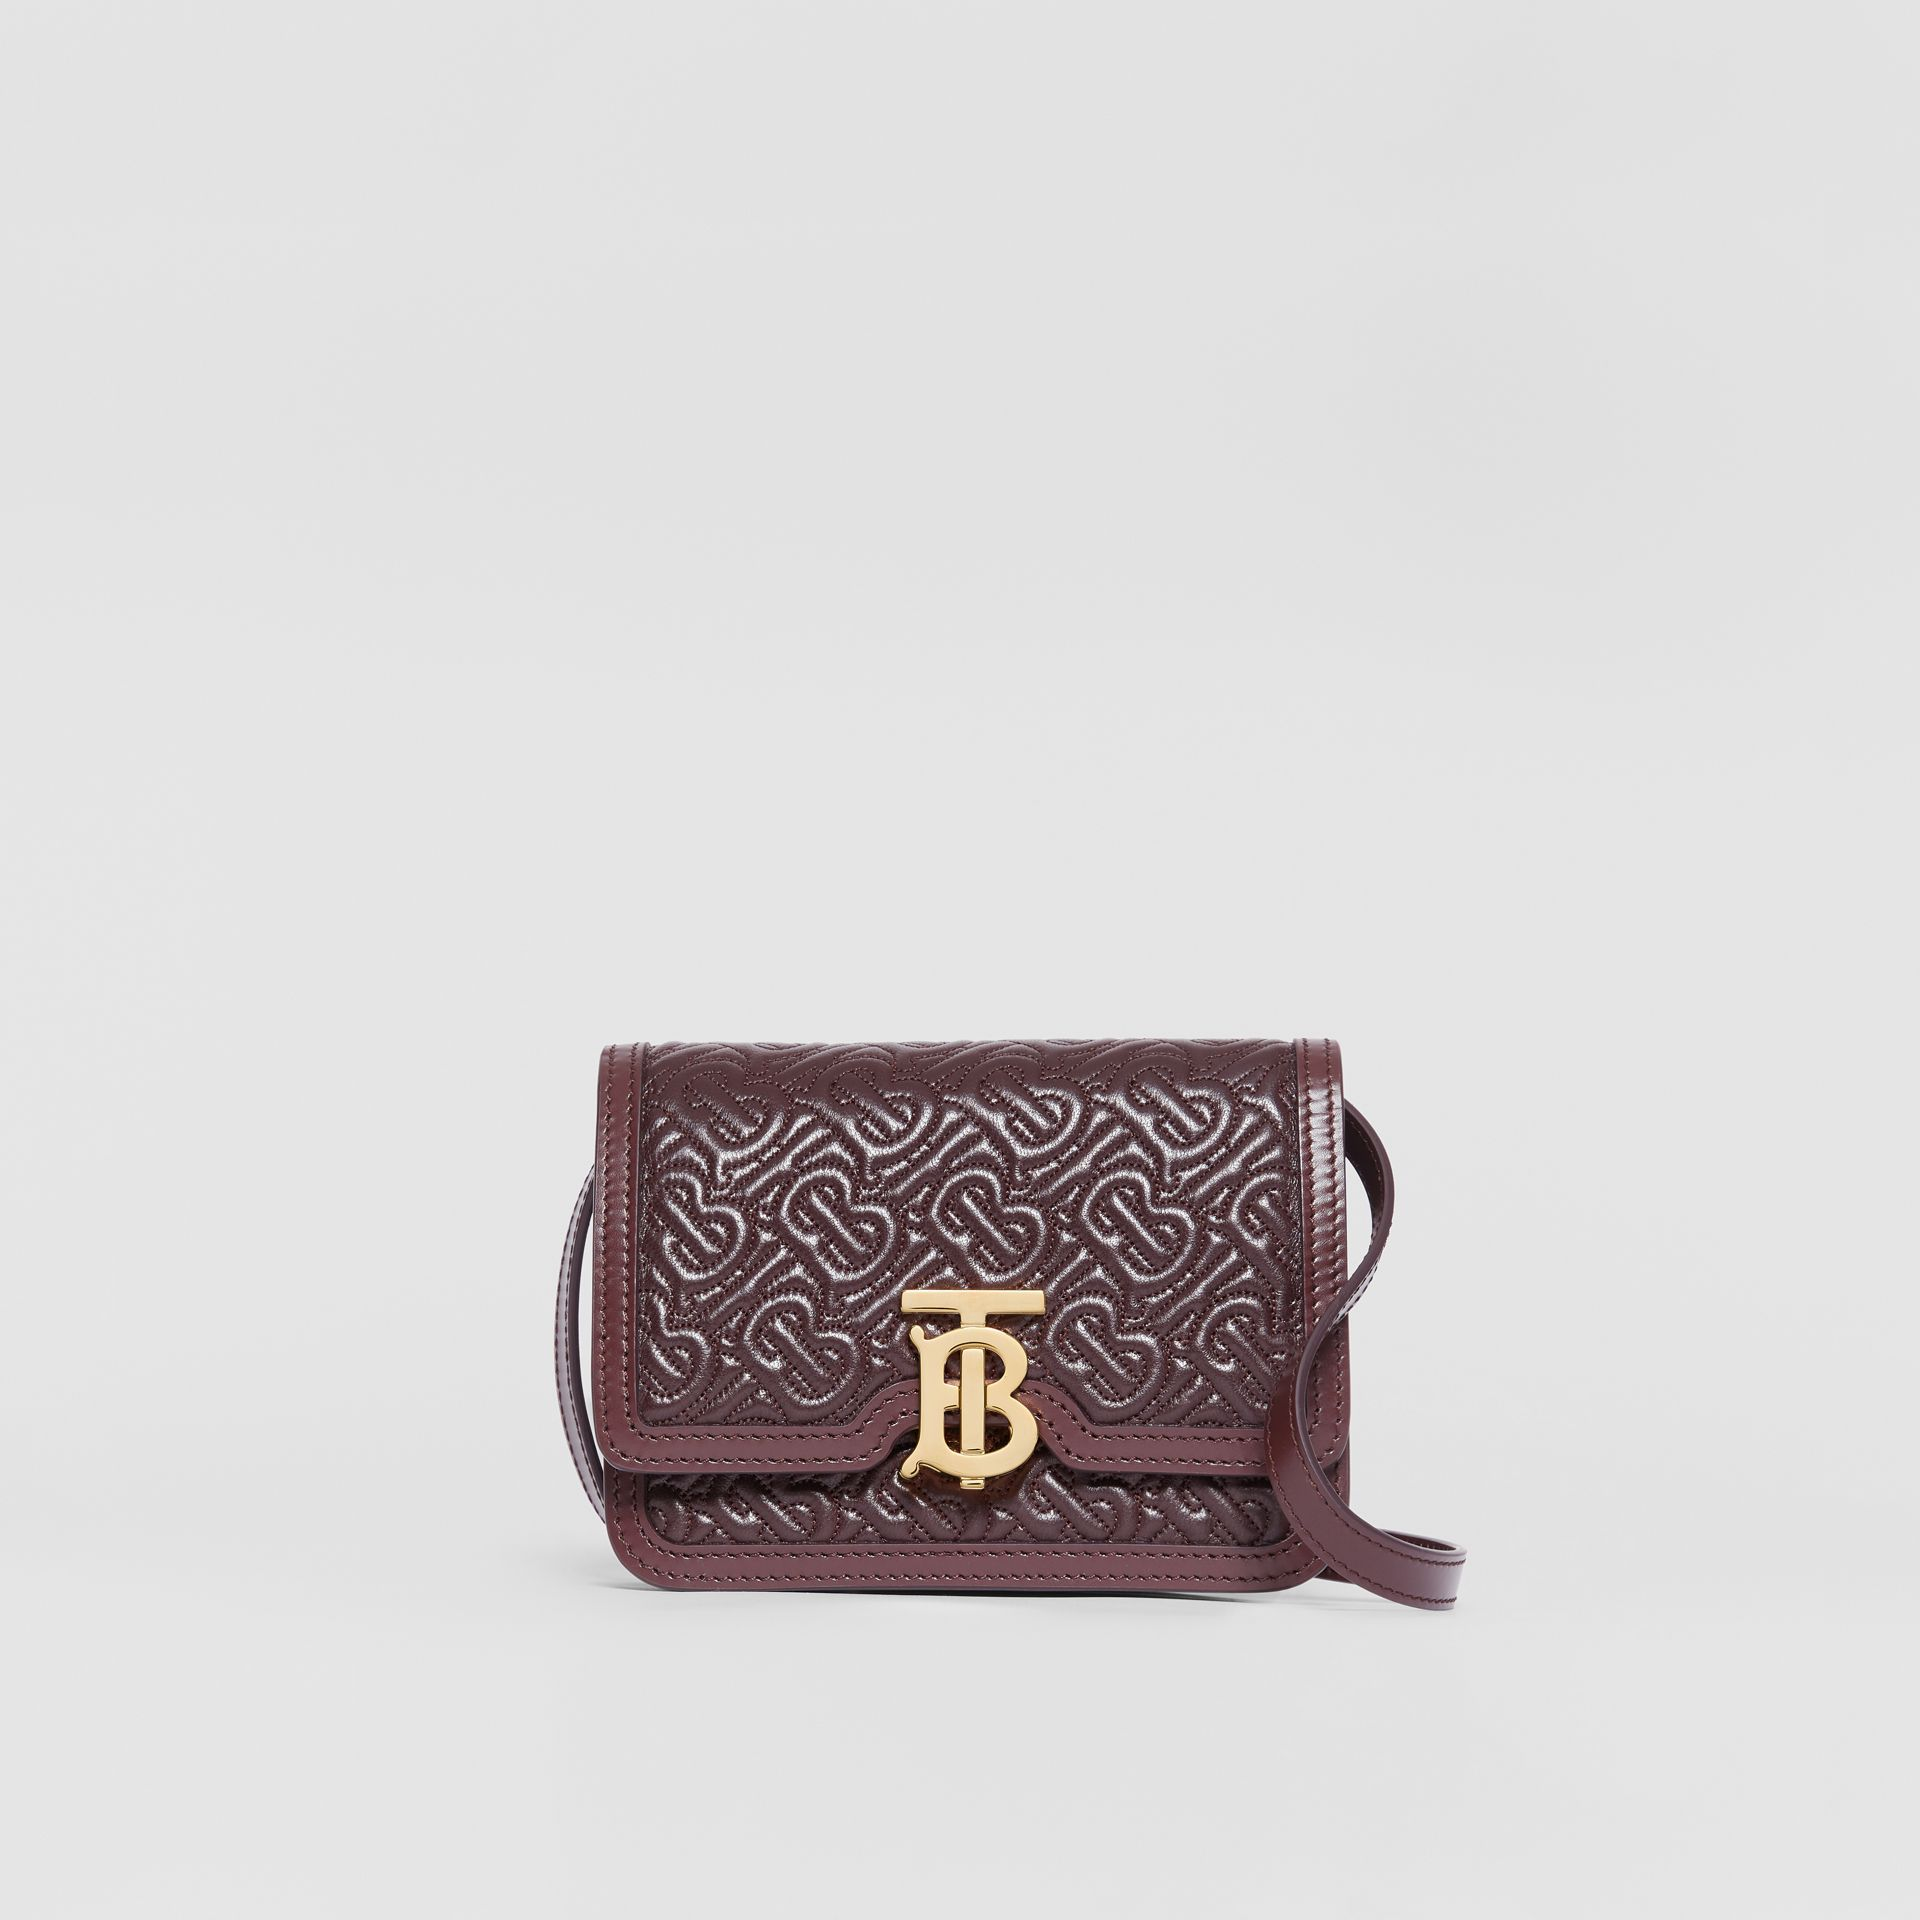 Mini Quilted Monogram Lambskin TB Bag in Dark Burgundy - Women | Burberry United Kingdom - gallery image 0